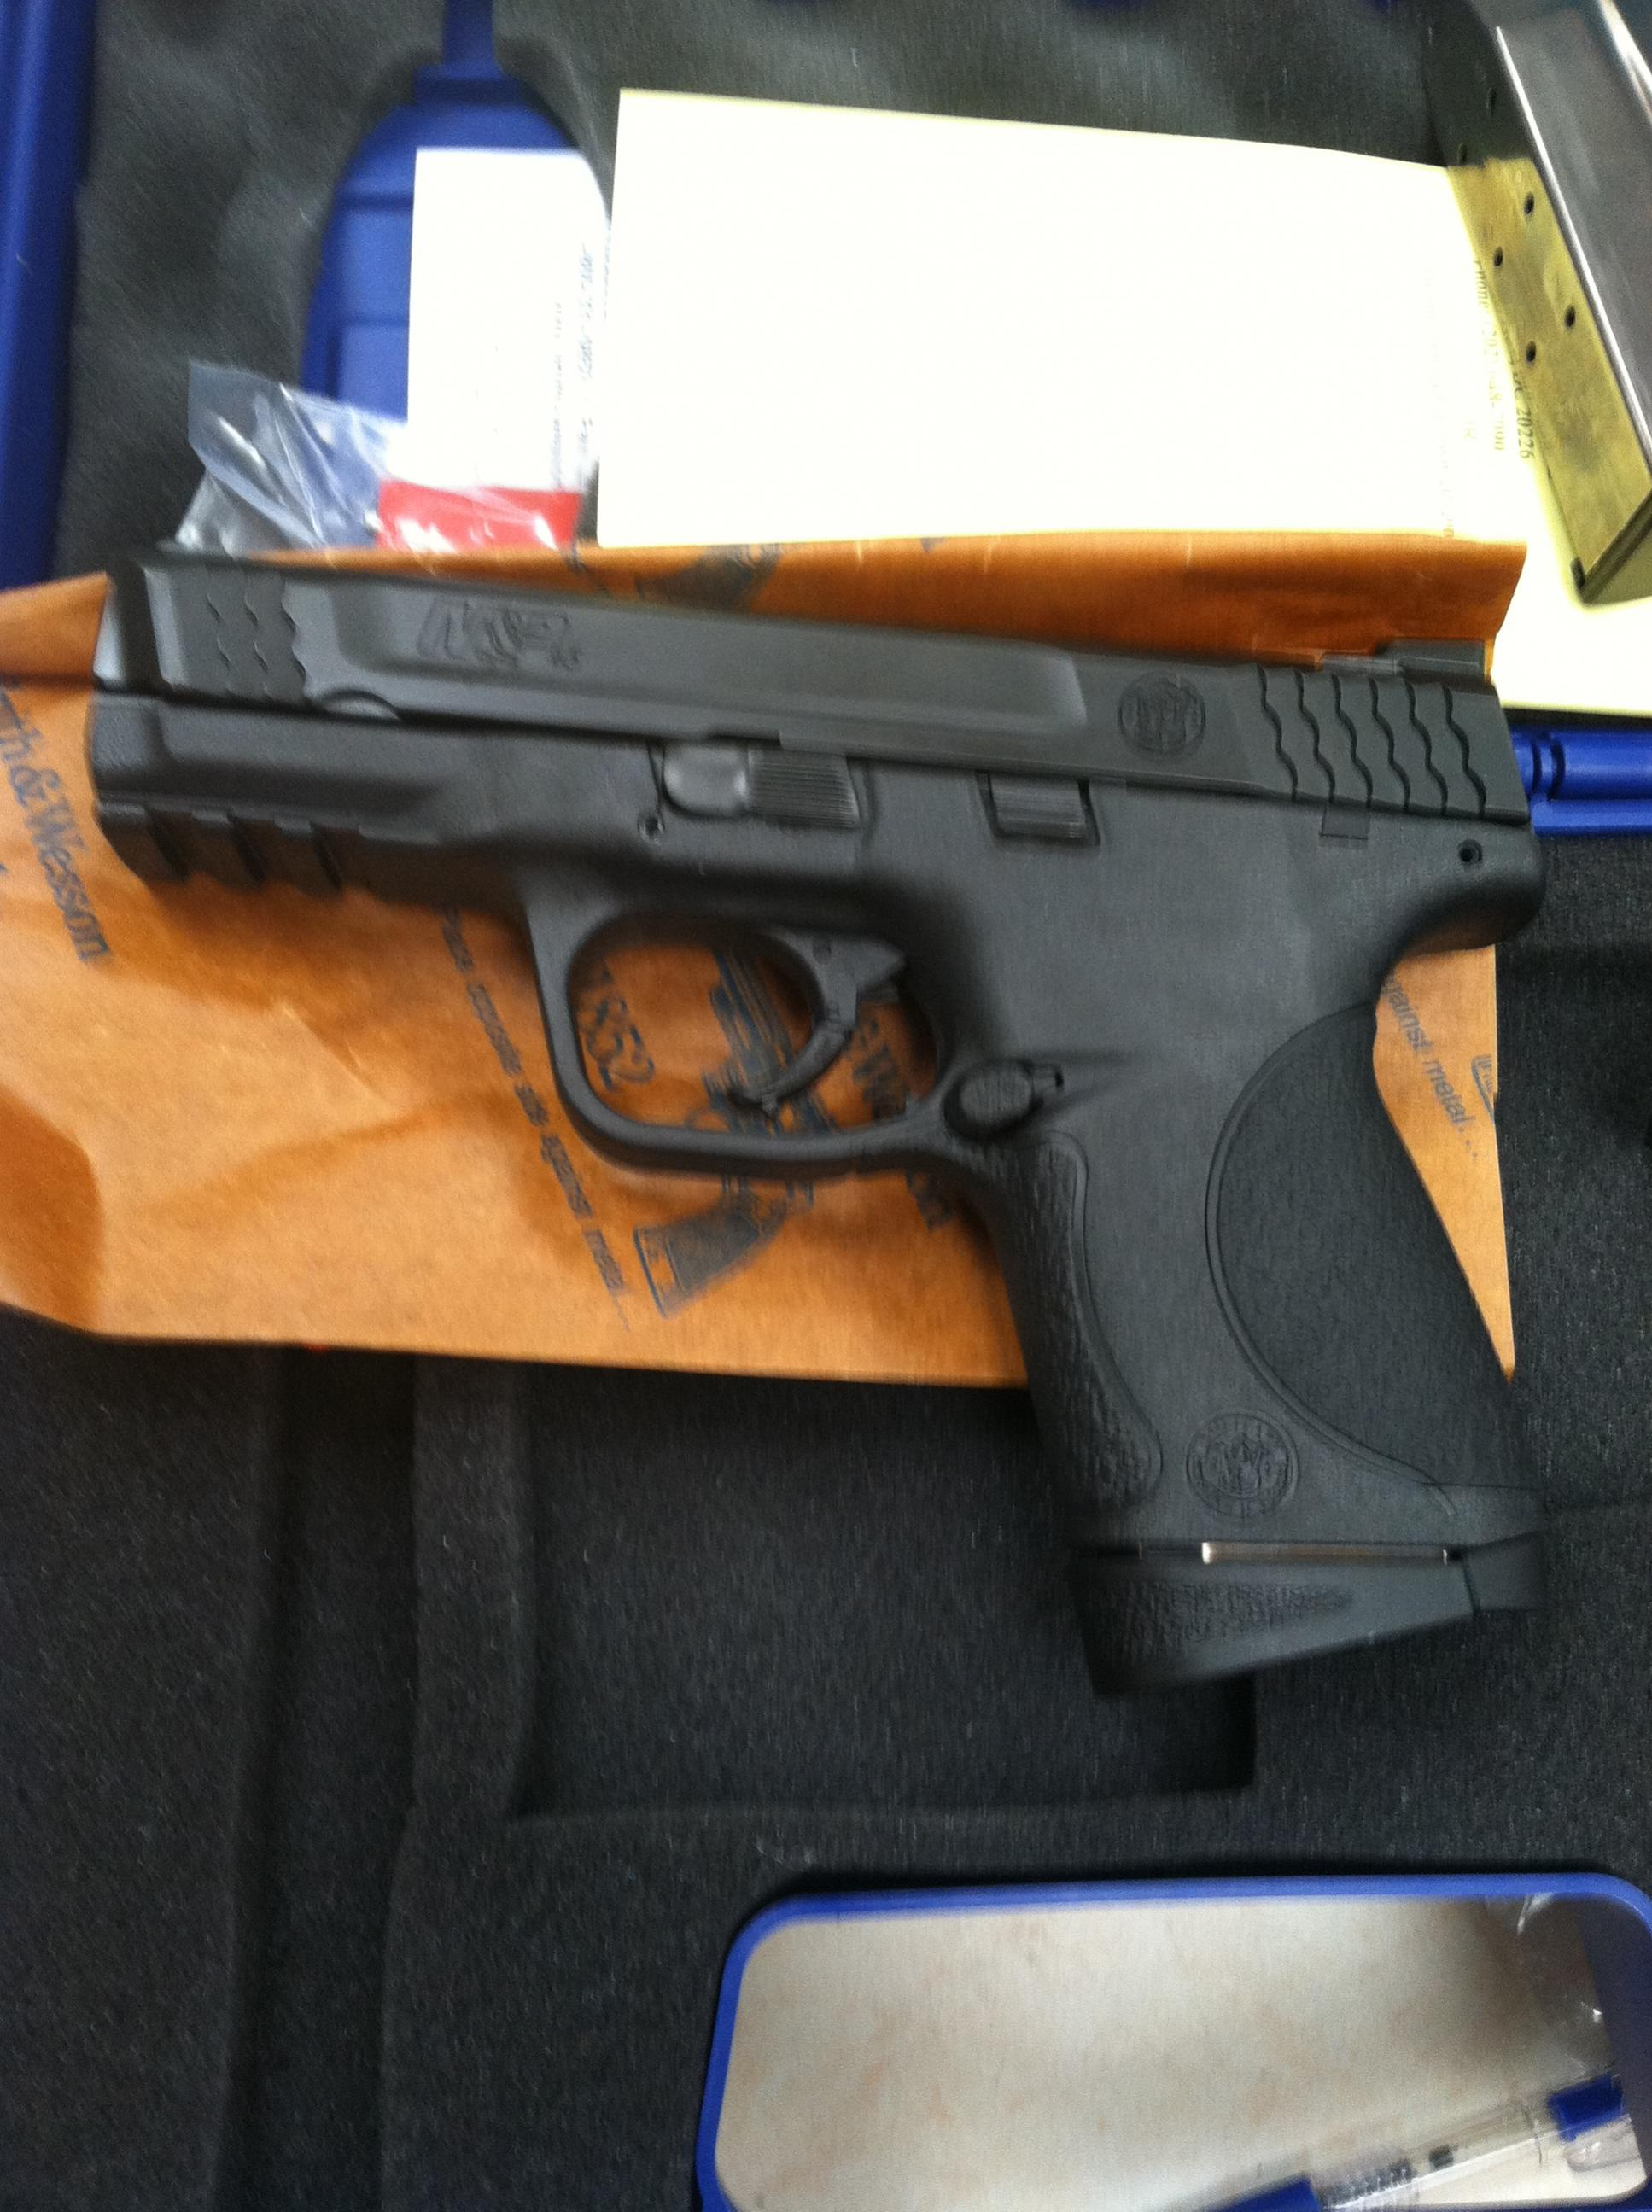 Picked up a M&P 45C-img_0372.jpg